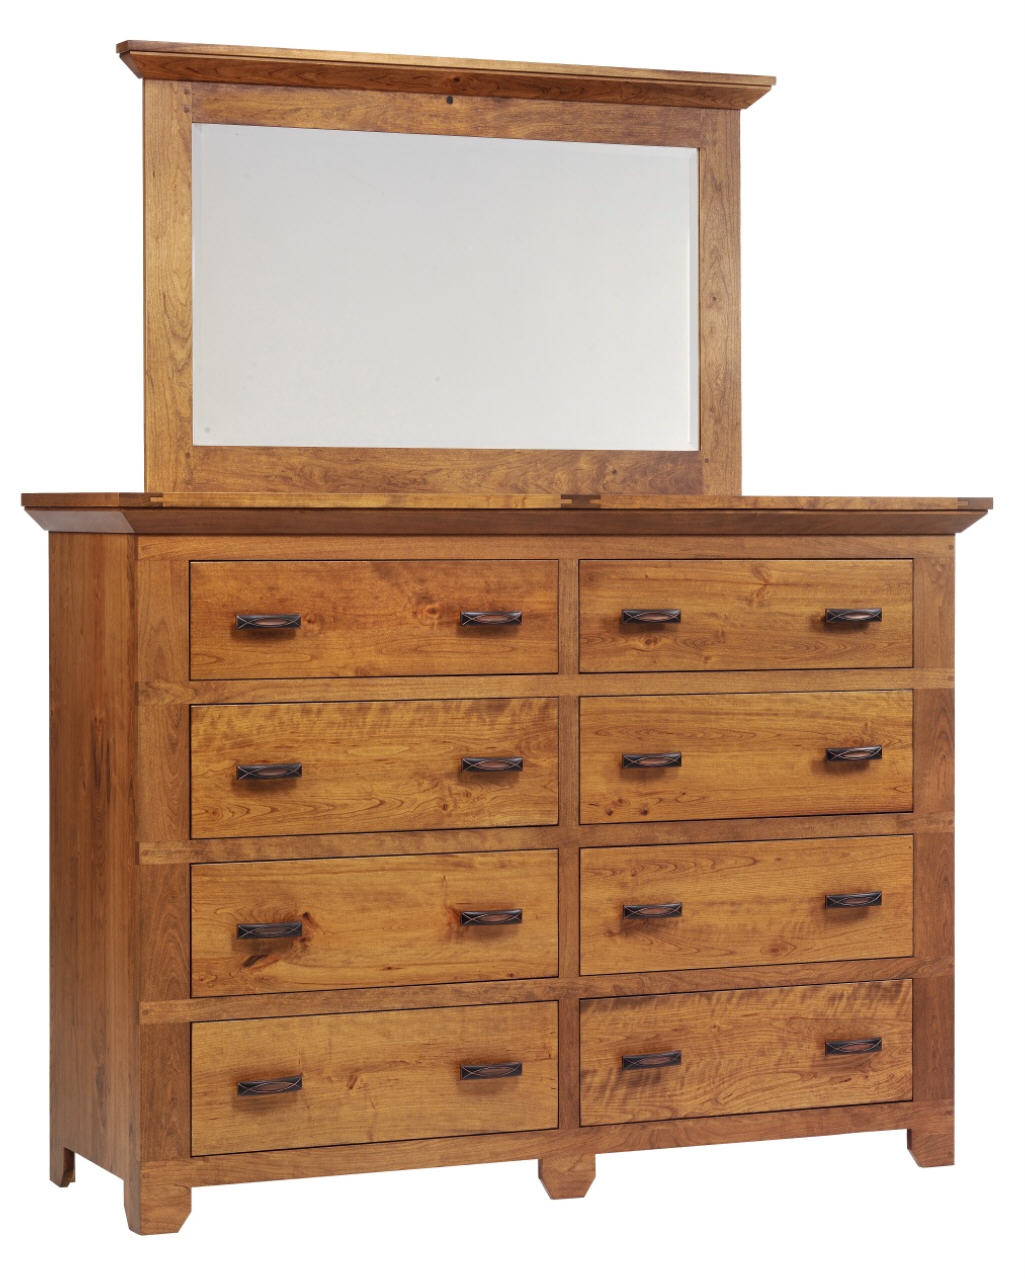 Redmond wellington high dresser 587 mfr566dr 91 for Stone barn furnishings